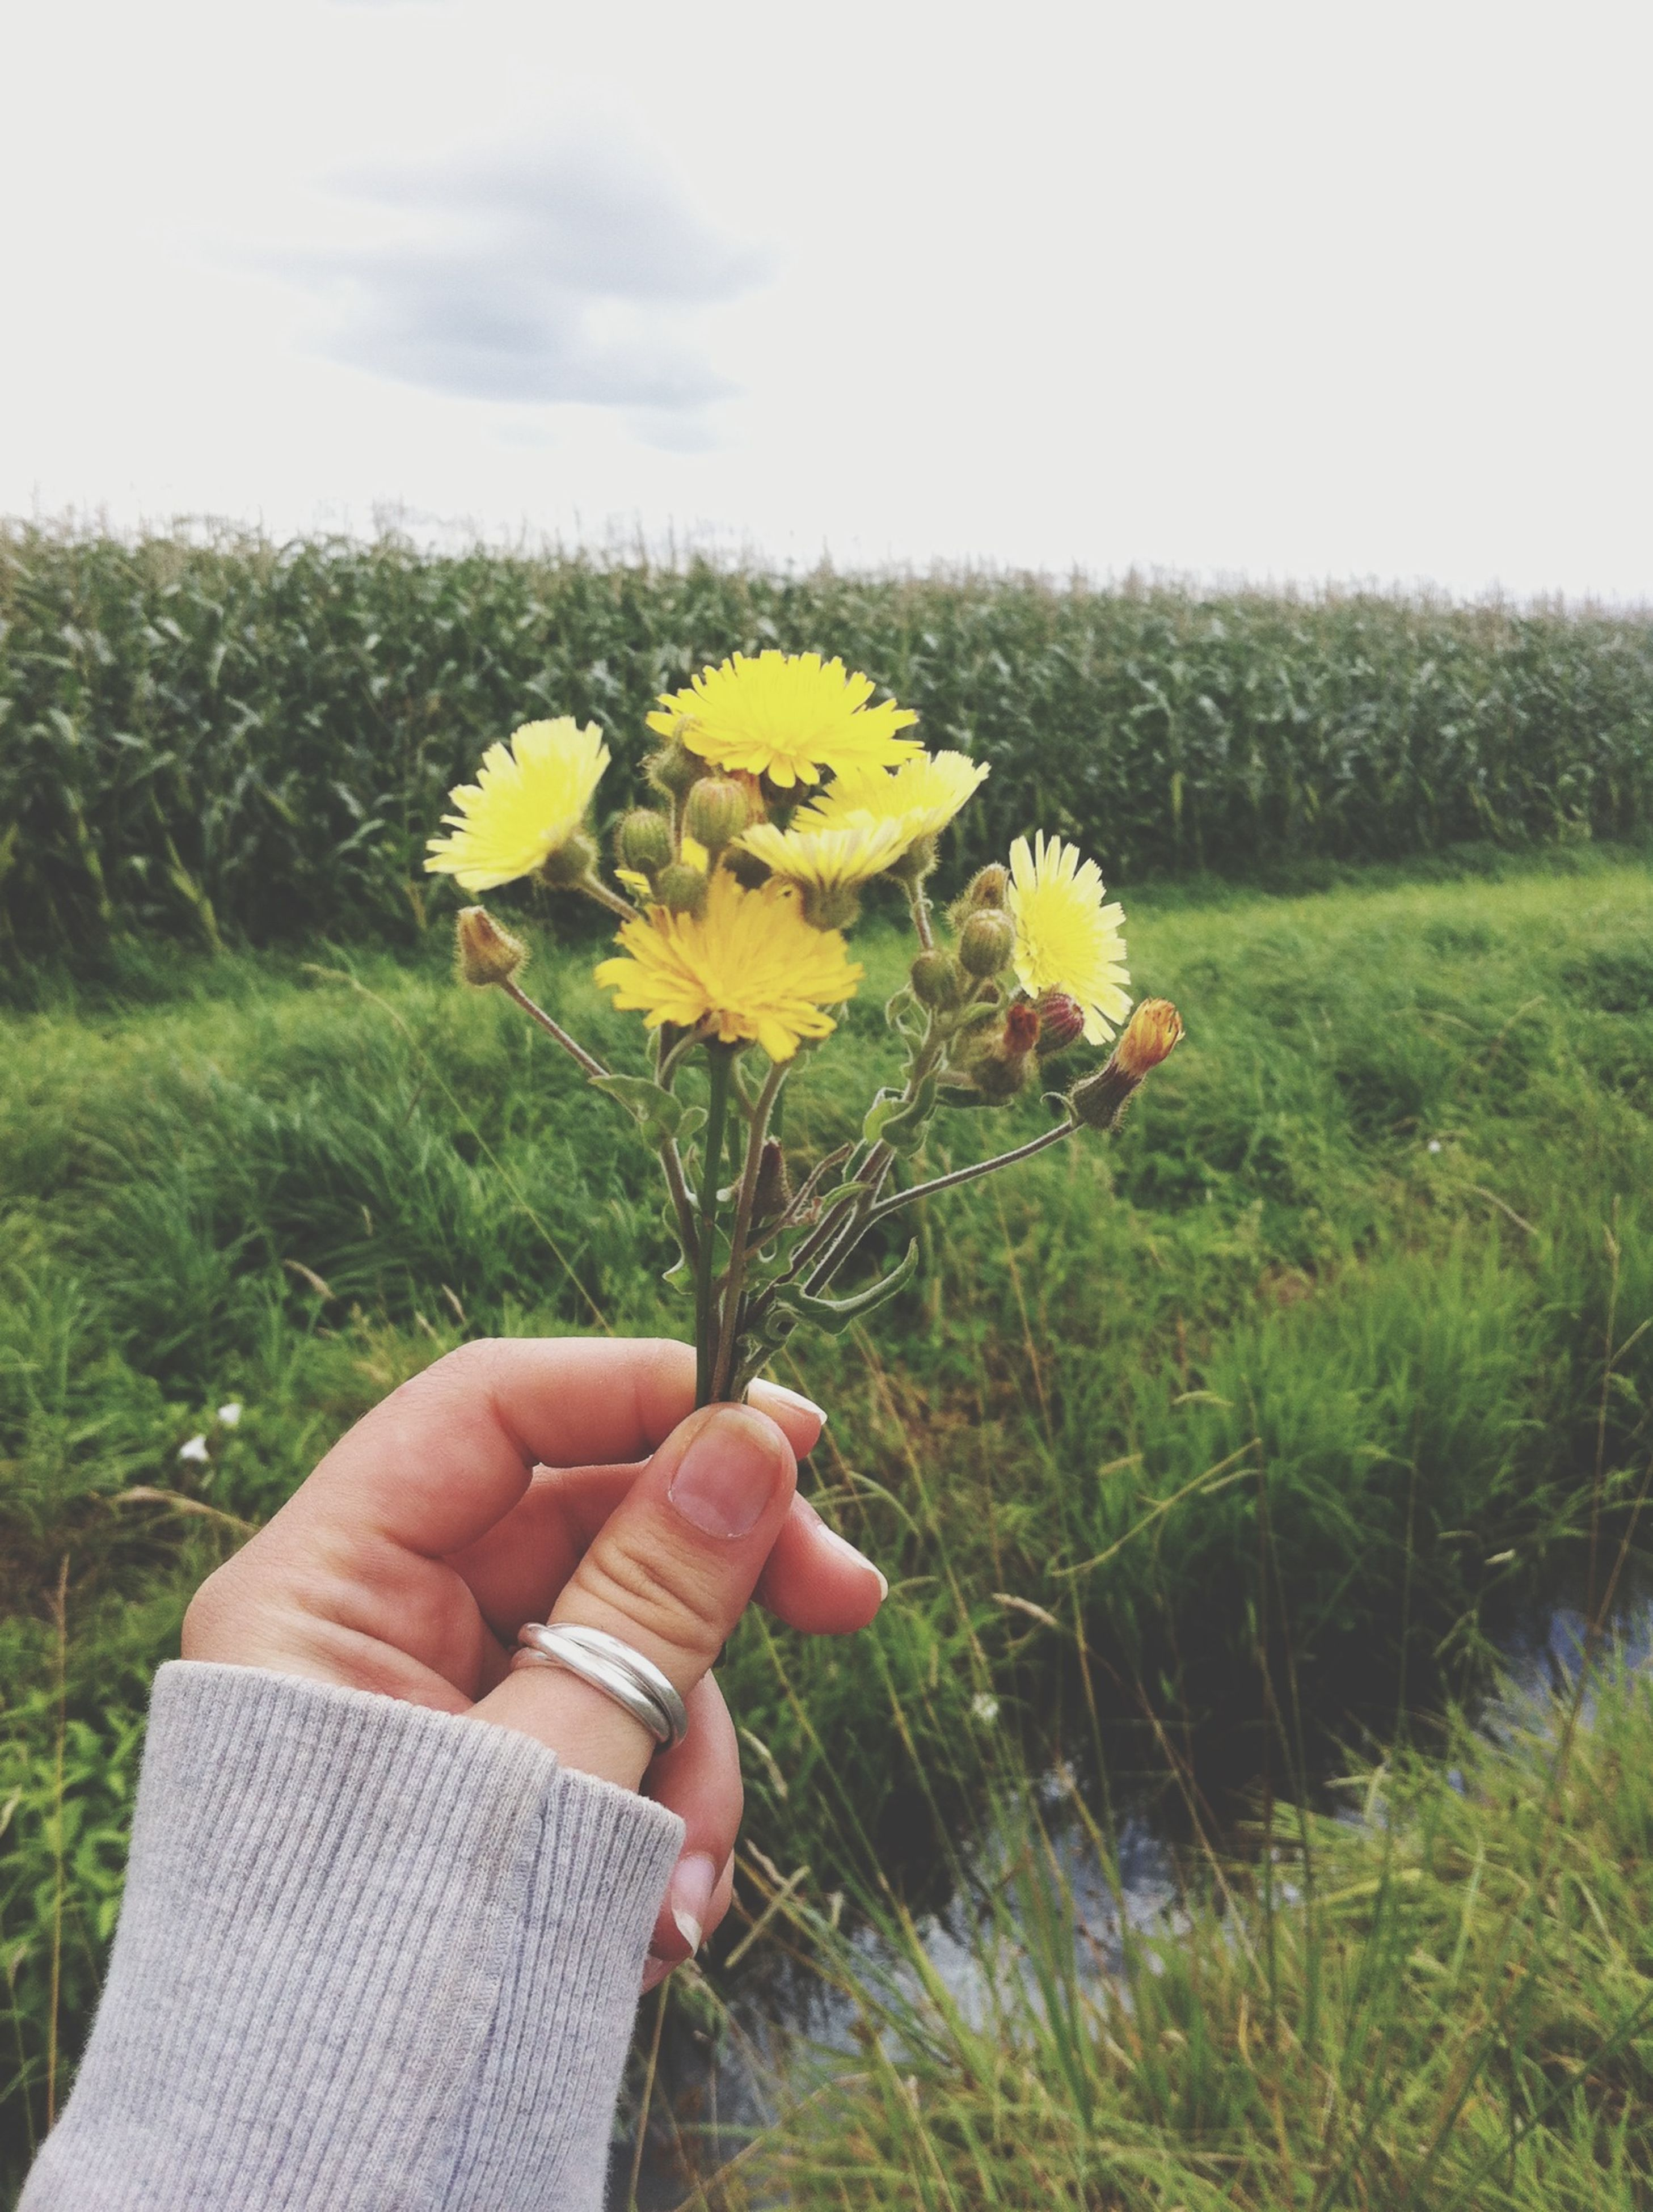 flower, person, holding, freshness, fragility, yellow, field, leisure activity, lifestyles, beauty in nature, growth, flower head, part of, plant, unrecognizable person, petal, nature